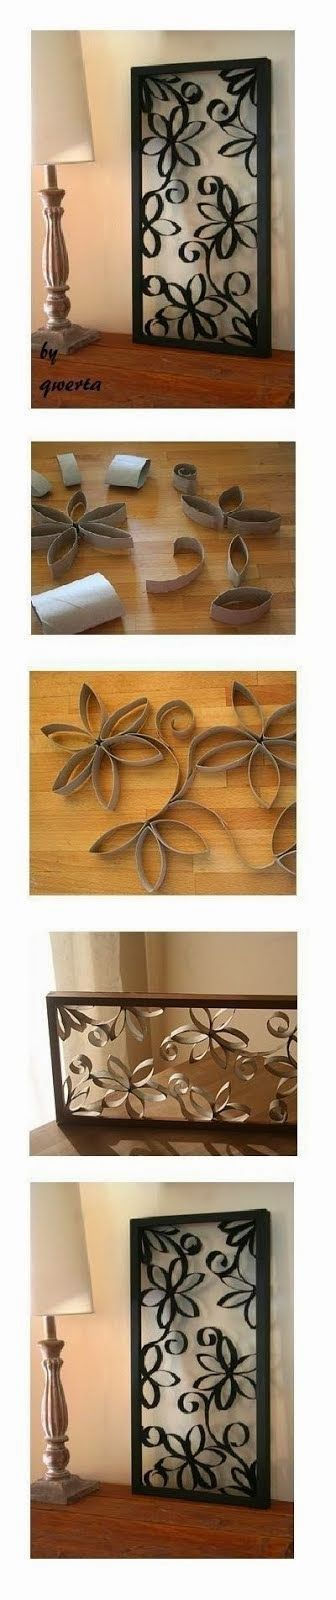 DIY Toilet Paper Roll Wall Decoration